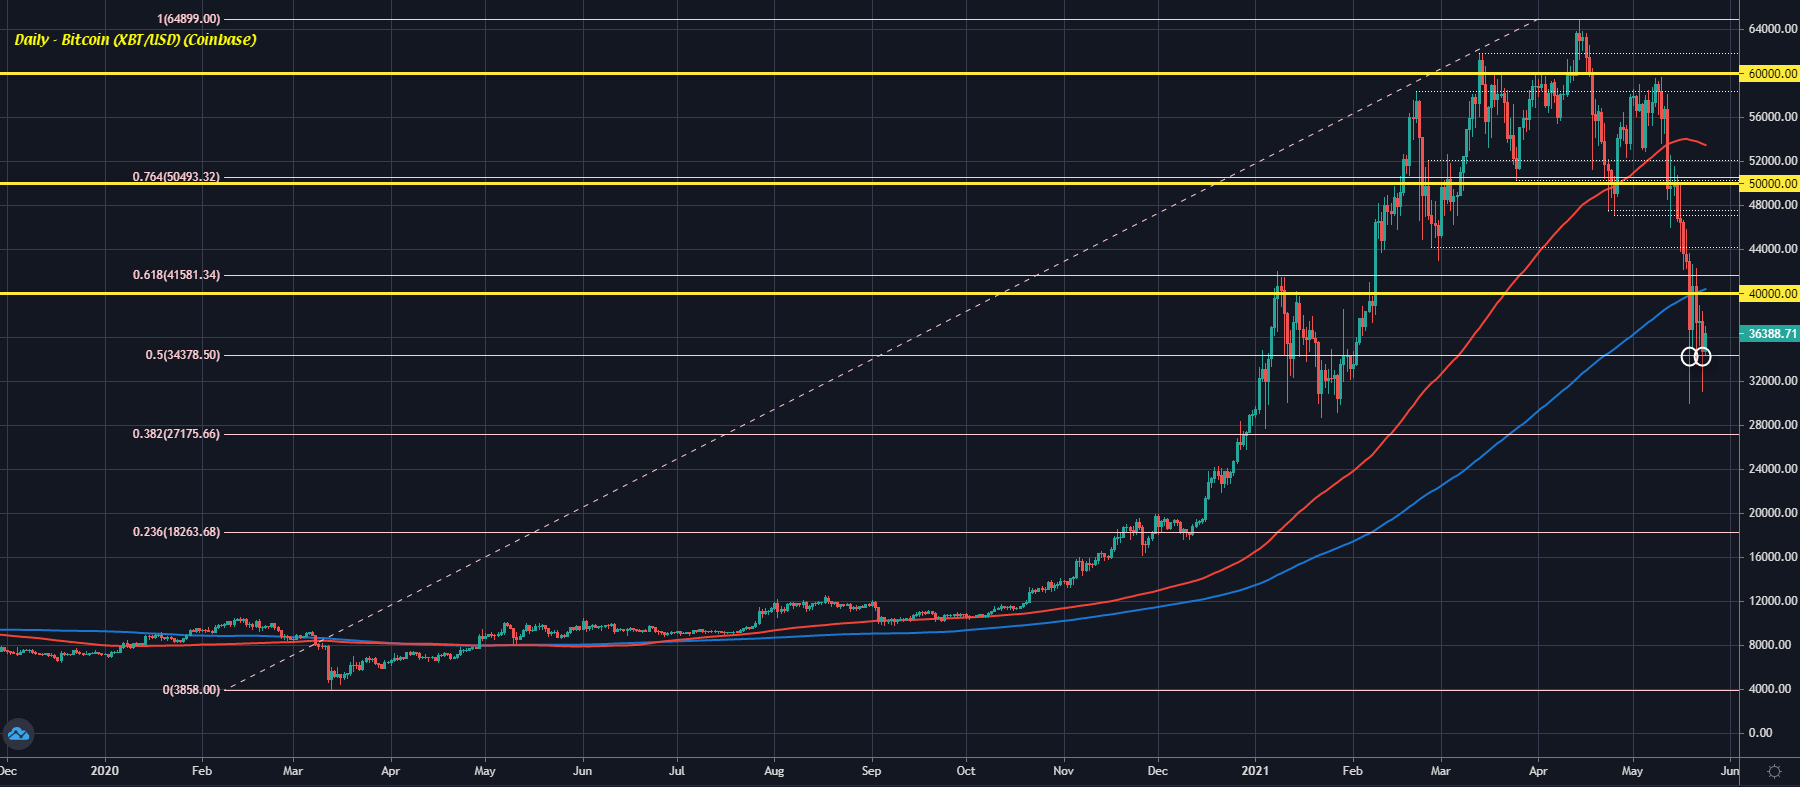 Bitcoin holds a bounce after weekend drag